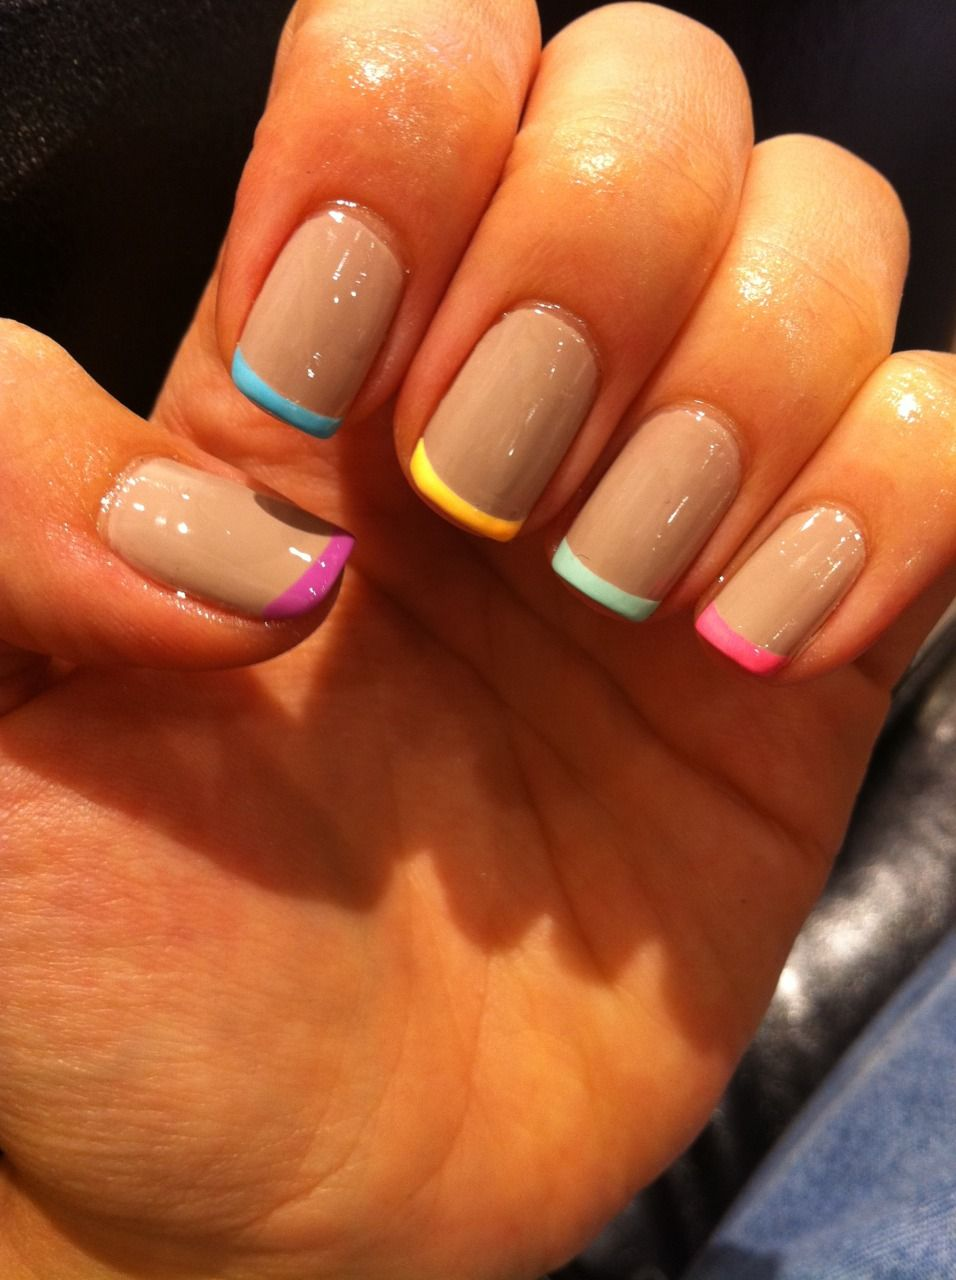 nails | nail art for the girls | Pinterest | Makeup, Nude nails and ...